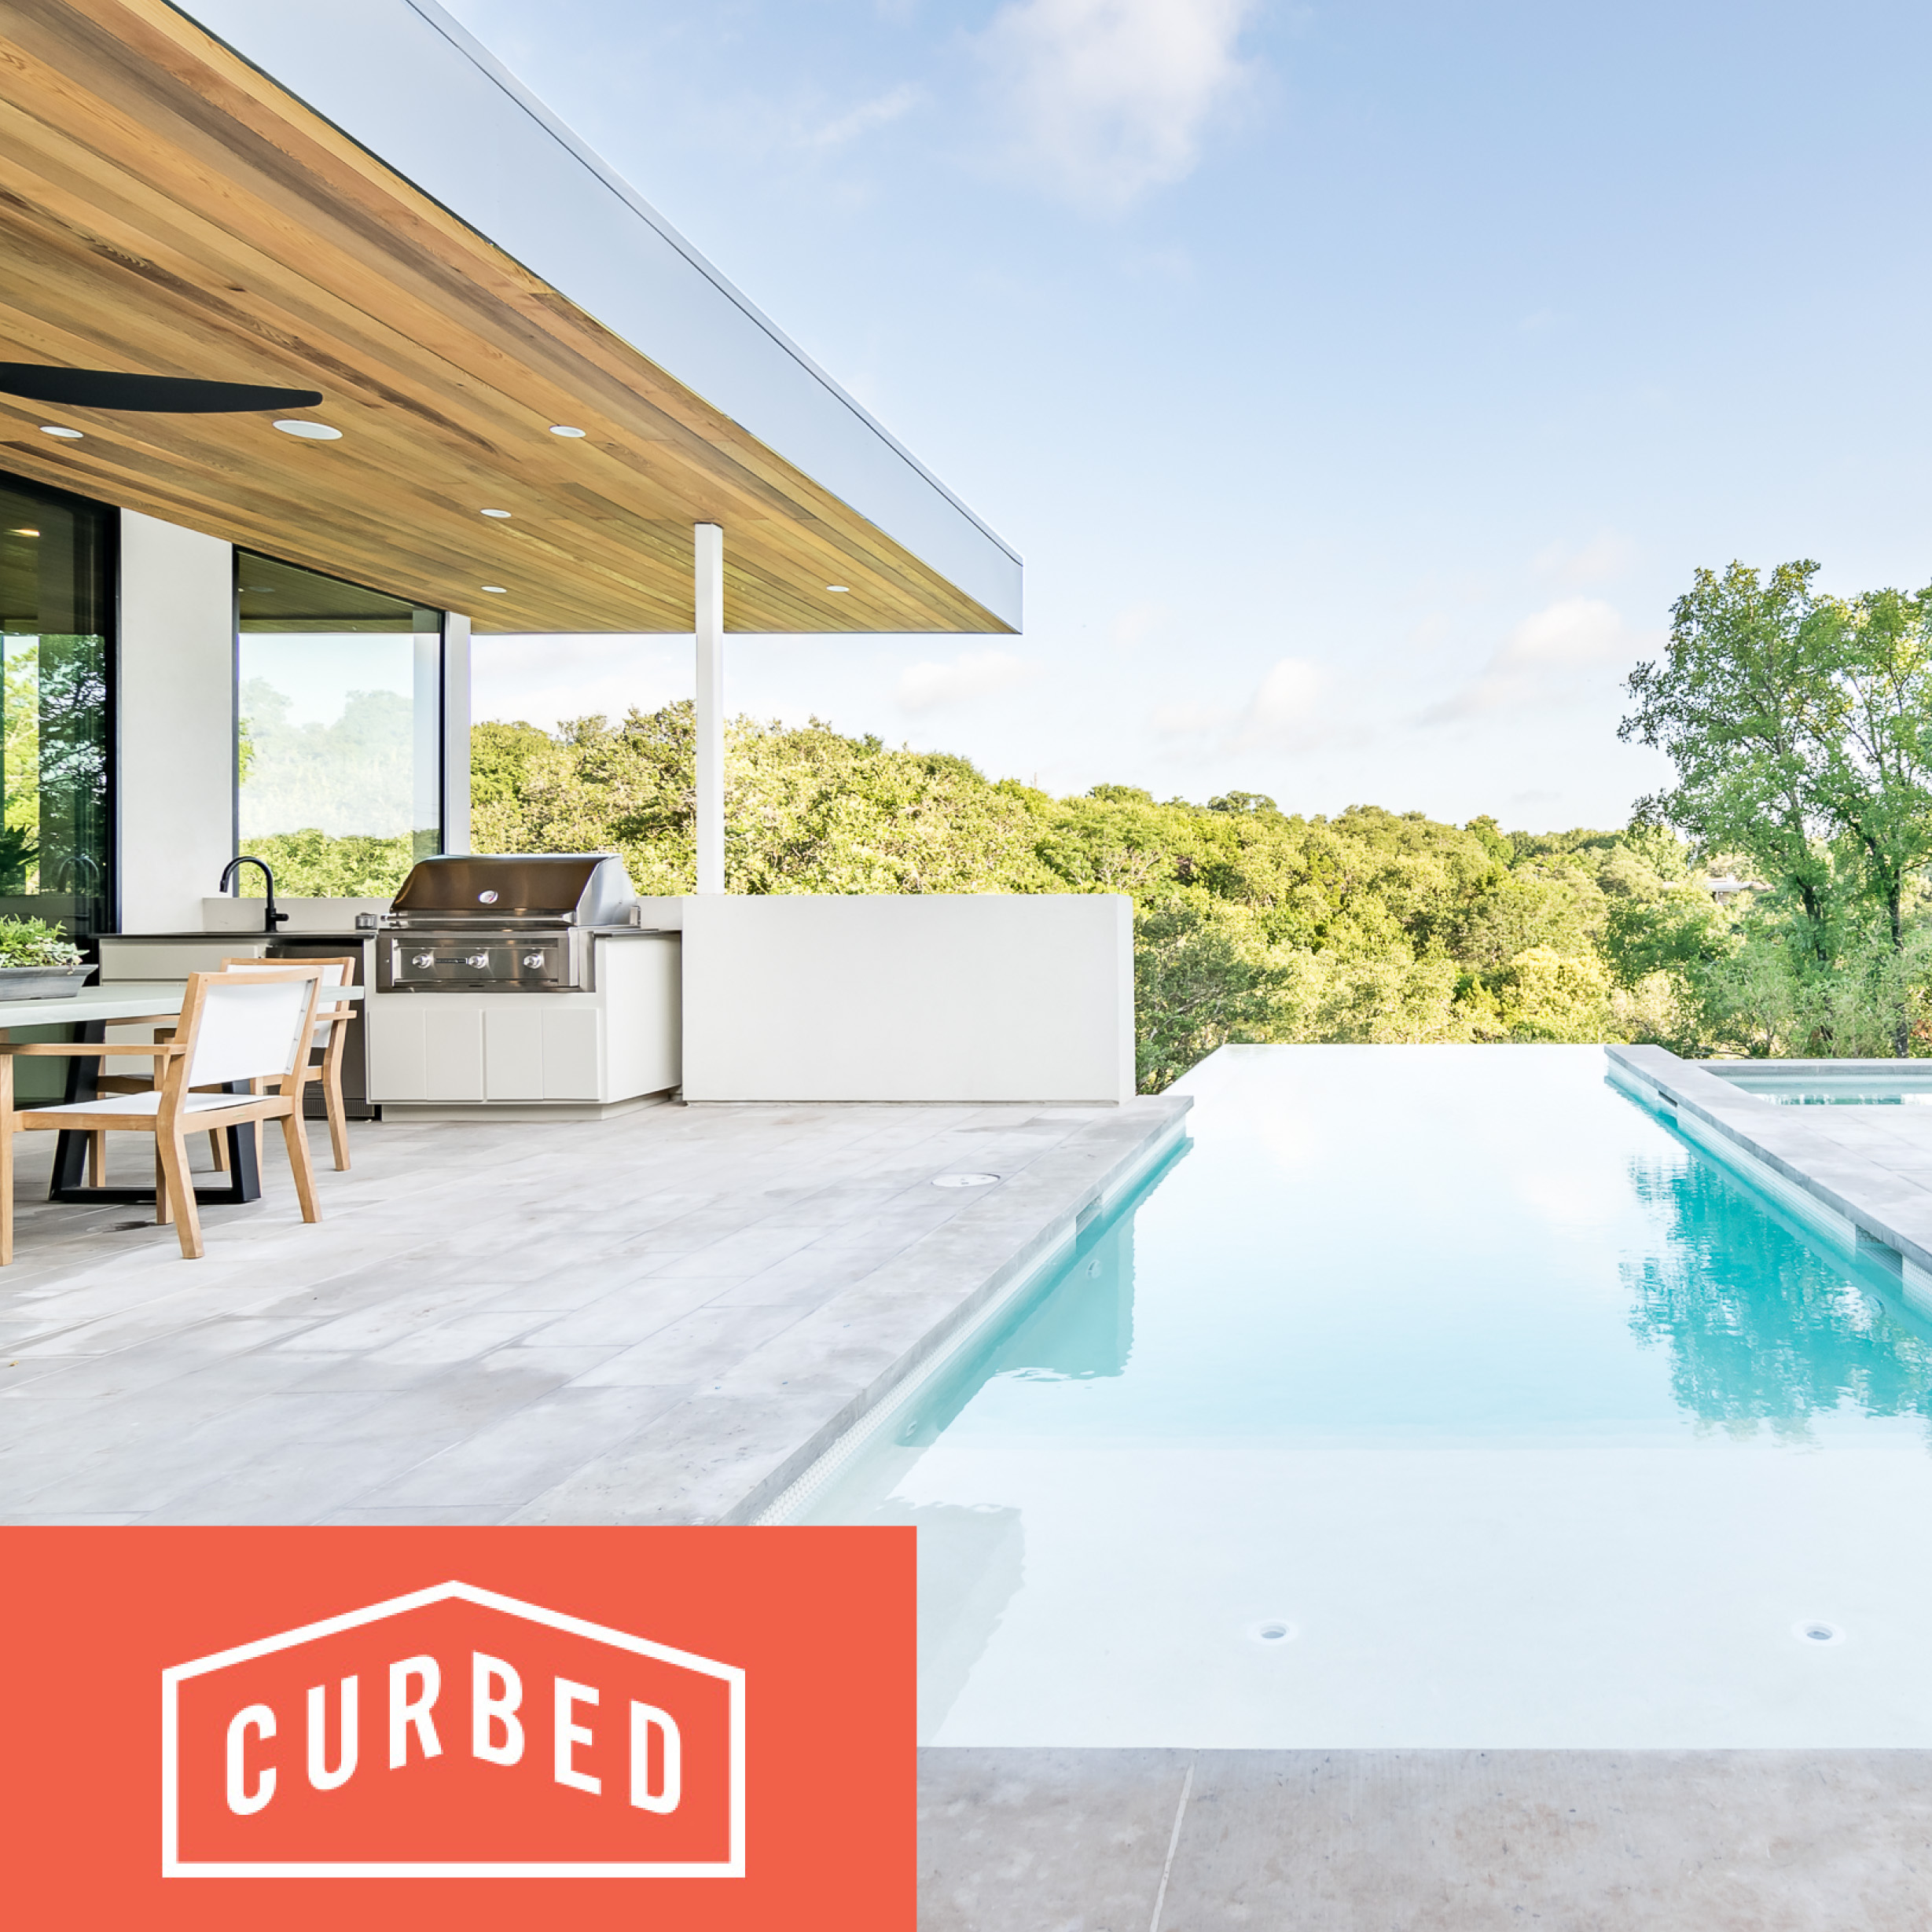 Curbed_2016_11_Bracketed Space House